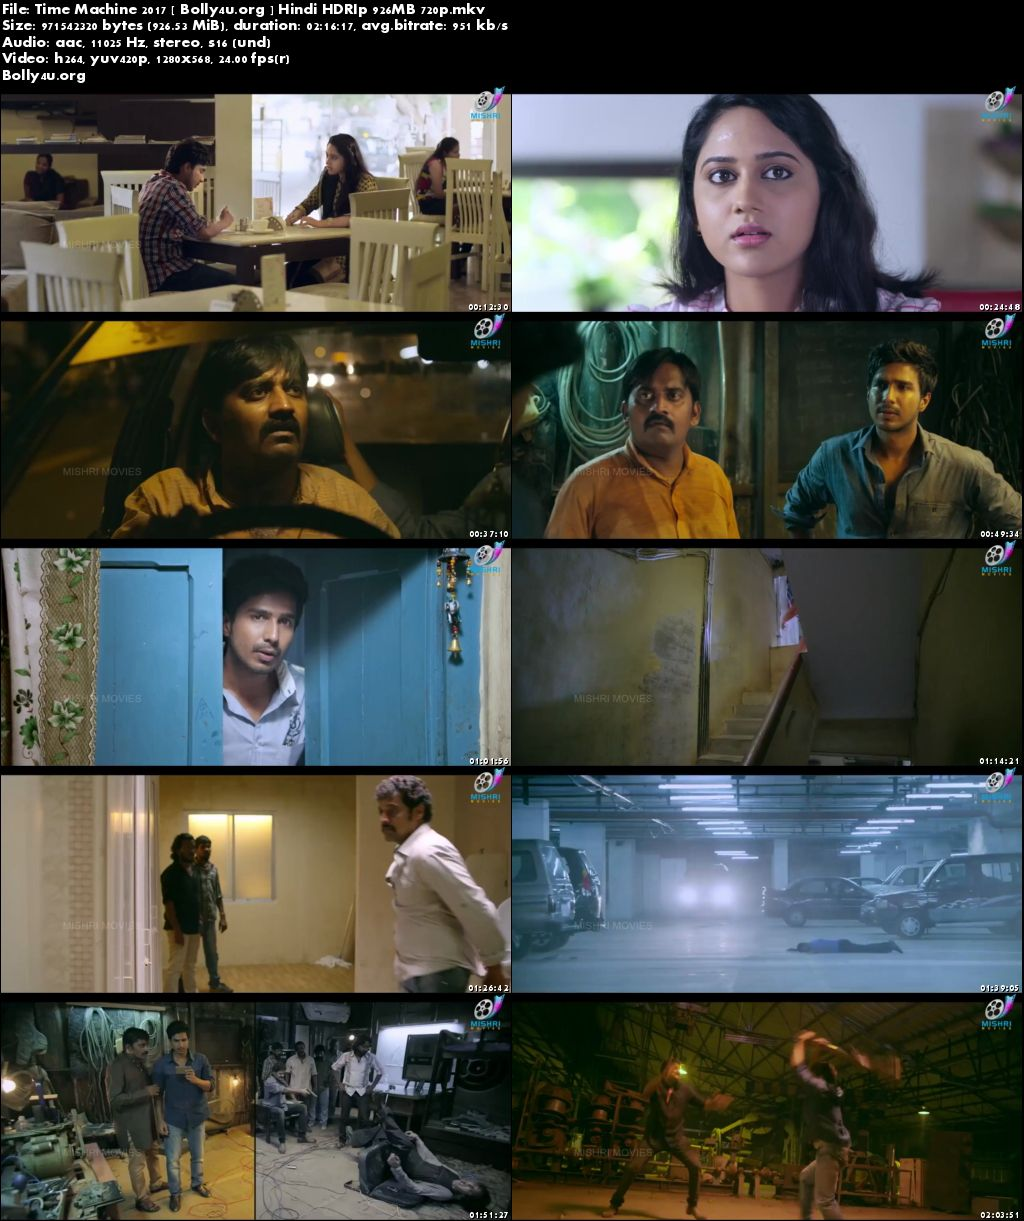 Time Machine 2017 HDRip 400Mb Full Hindi Movie Download 480p